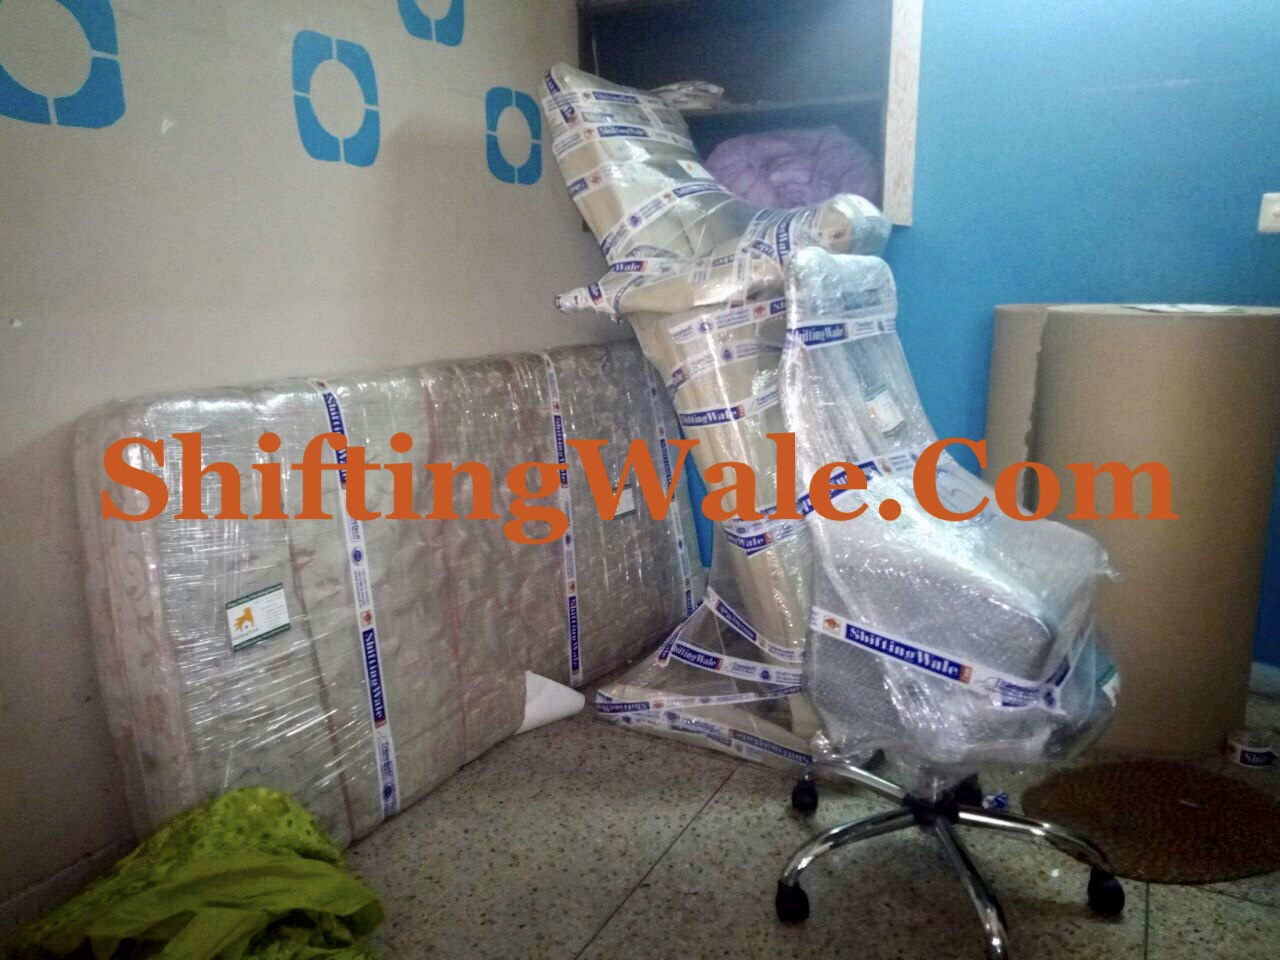 Mumbai to Chandigarh Packers and Movers Get Free Quotation with Best Price